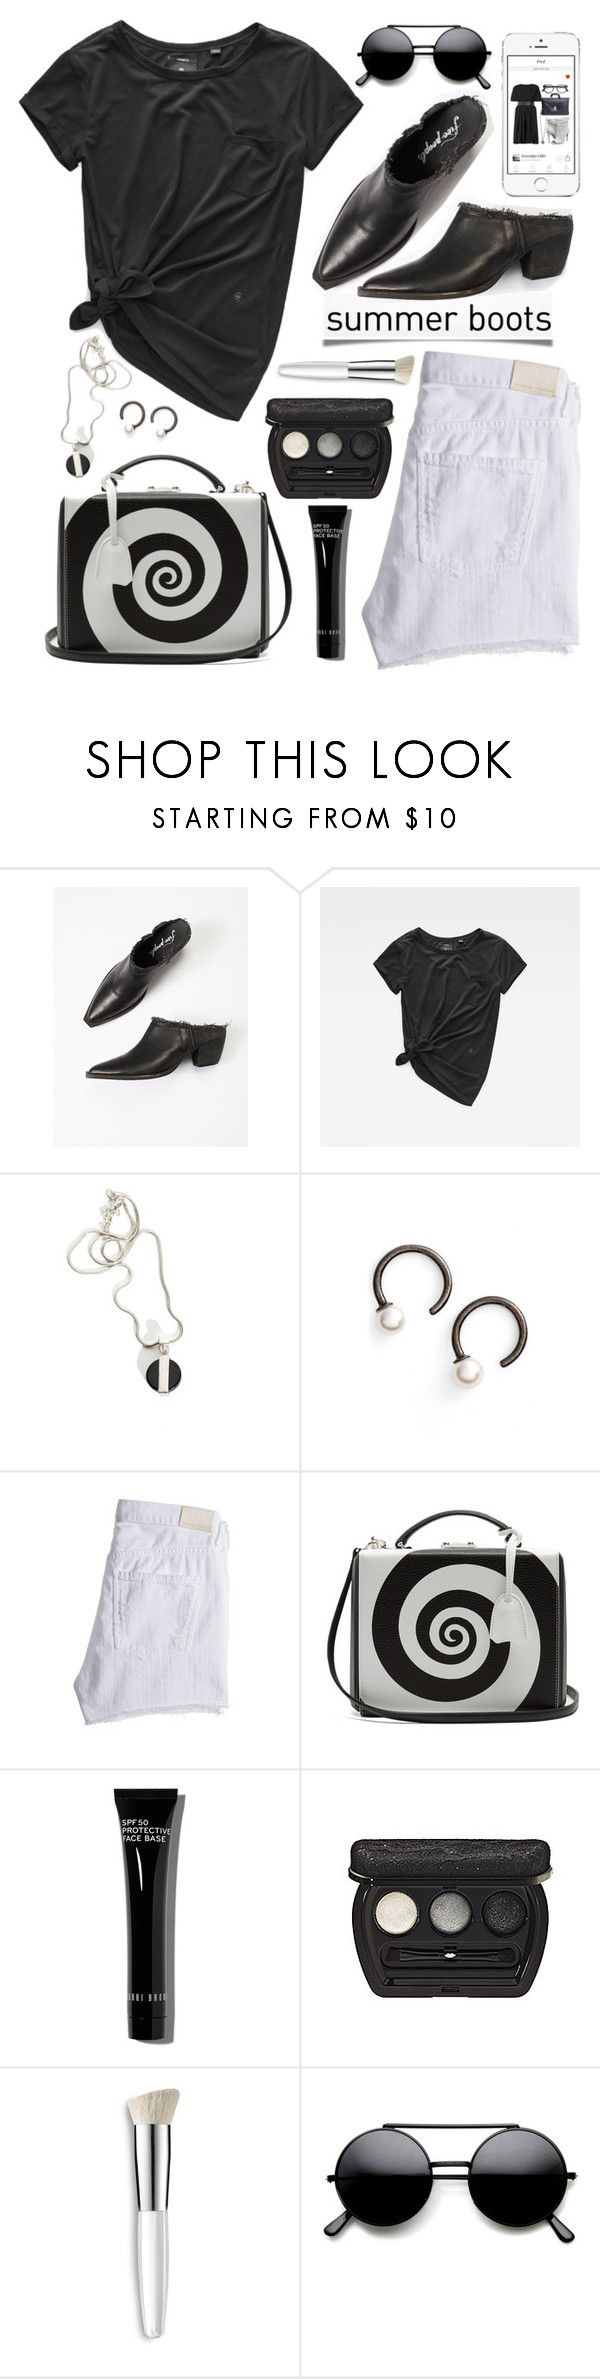 """Walk This Way: Summer Booties"" by rosie305 ❤ liked on Polyvore featuring Free People, Julien David, Mark Cross, Bobbi Brown Cosmetics, Laura Geller, Trish McEvoy and summerbooties"